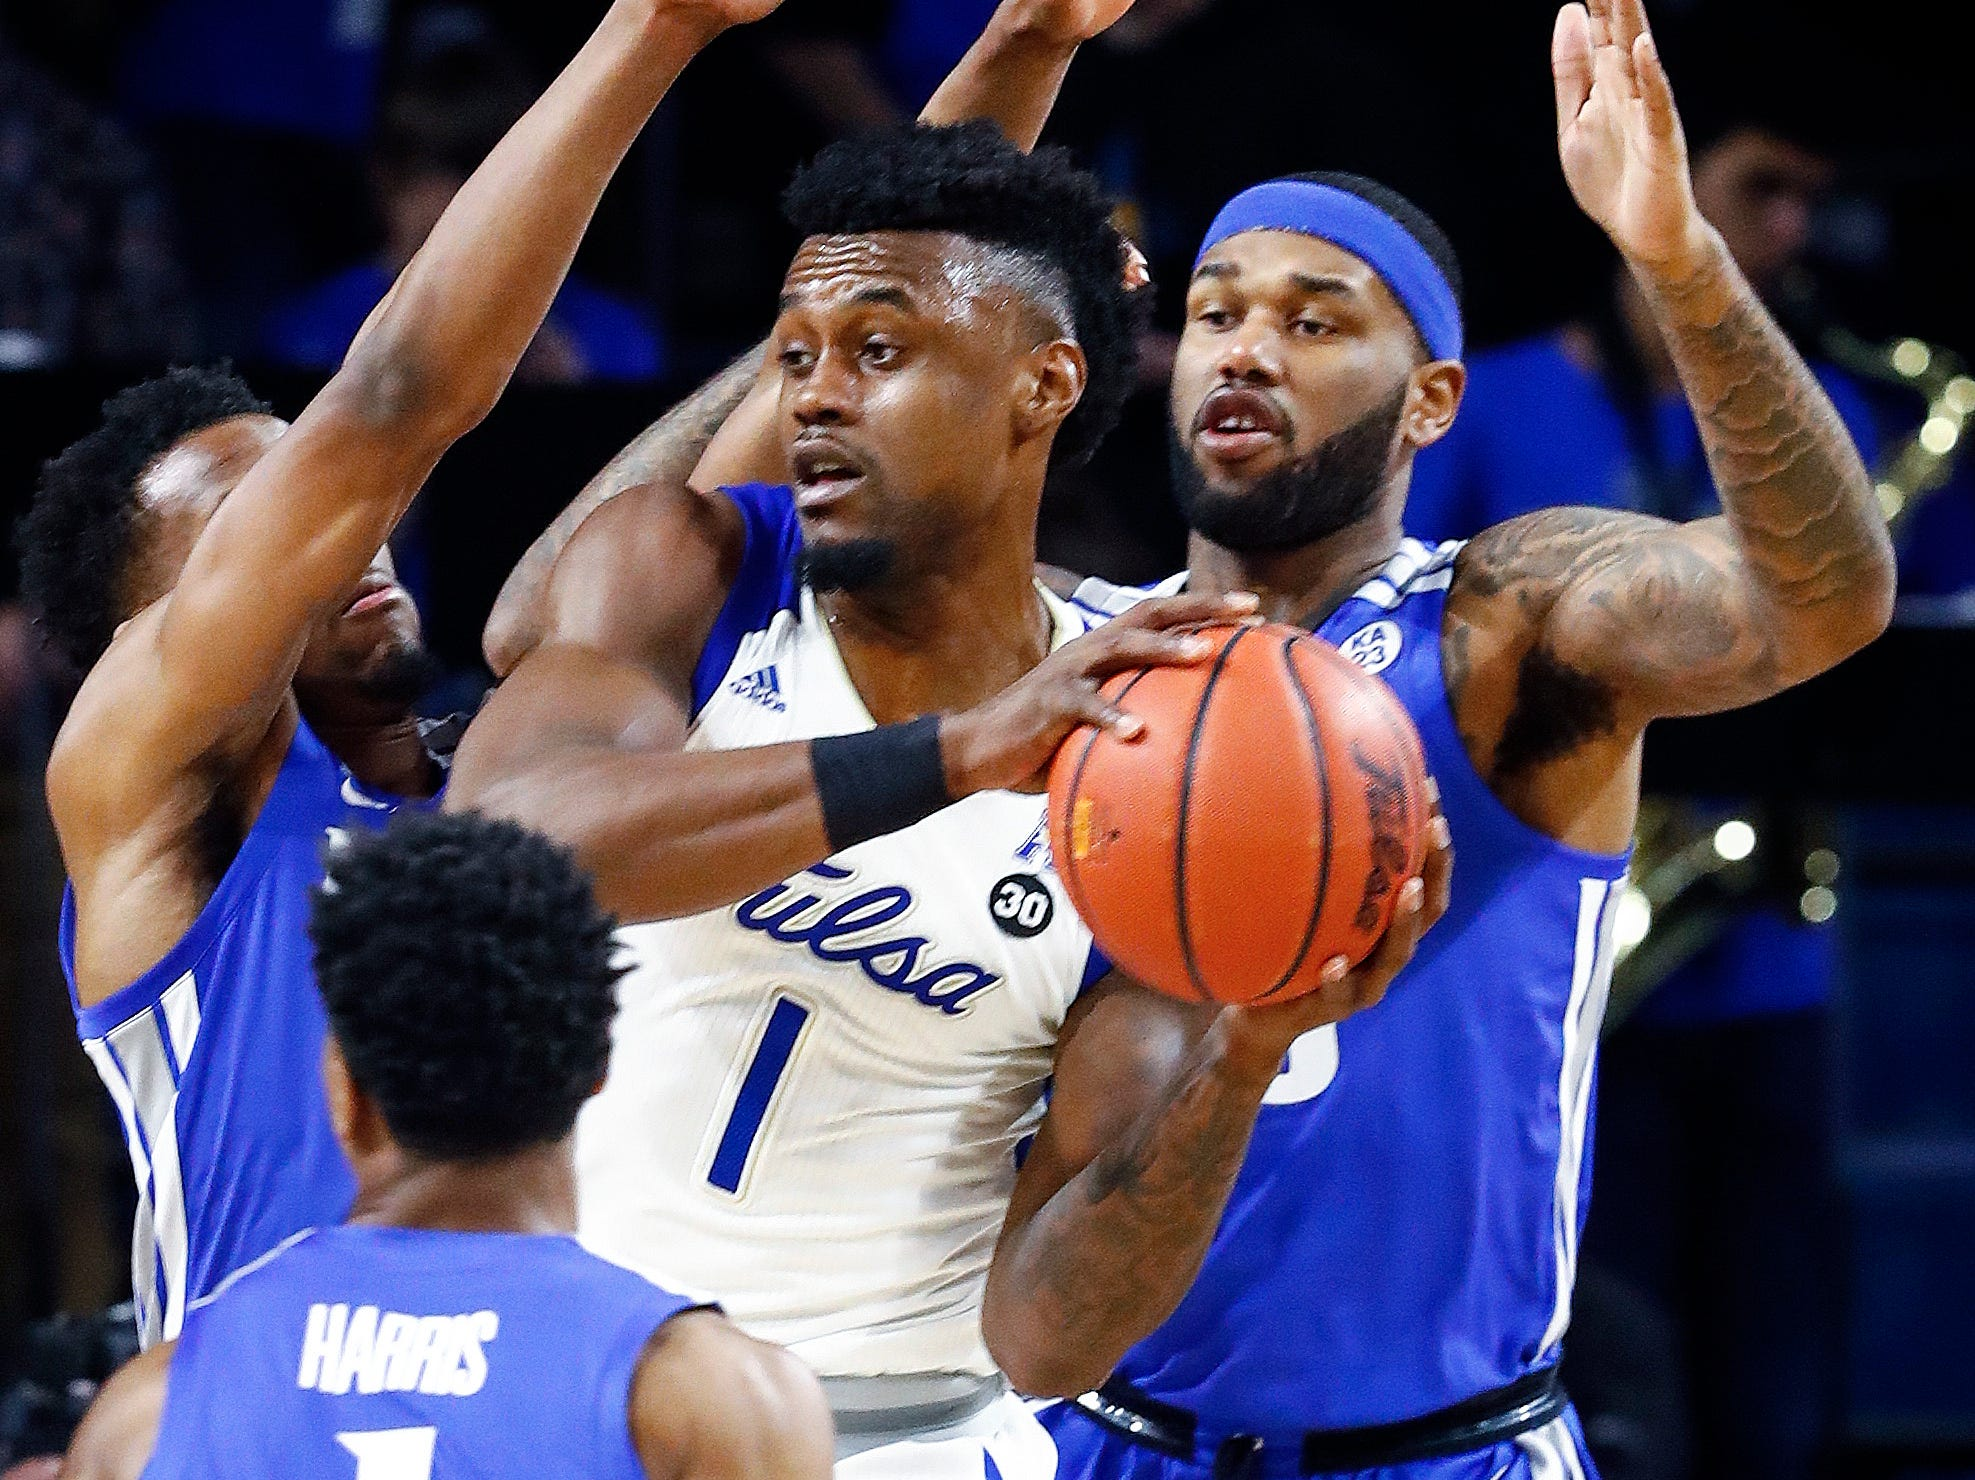 Memphis defenders Jeremiah Martin (left) and Mike Parks Jr. (right) apply defensive pressure to Tulsa forward Martins Igbanu (middle) during action in Tulsa, Wednesday, January 30, 2019.